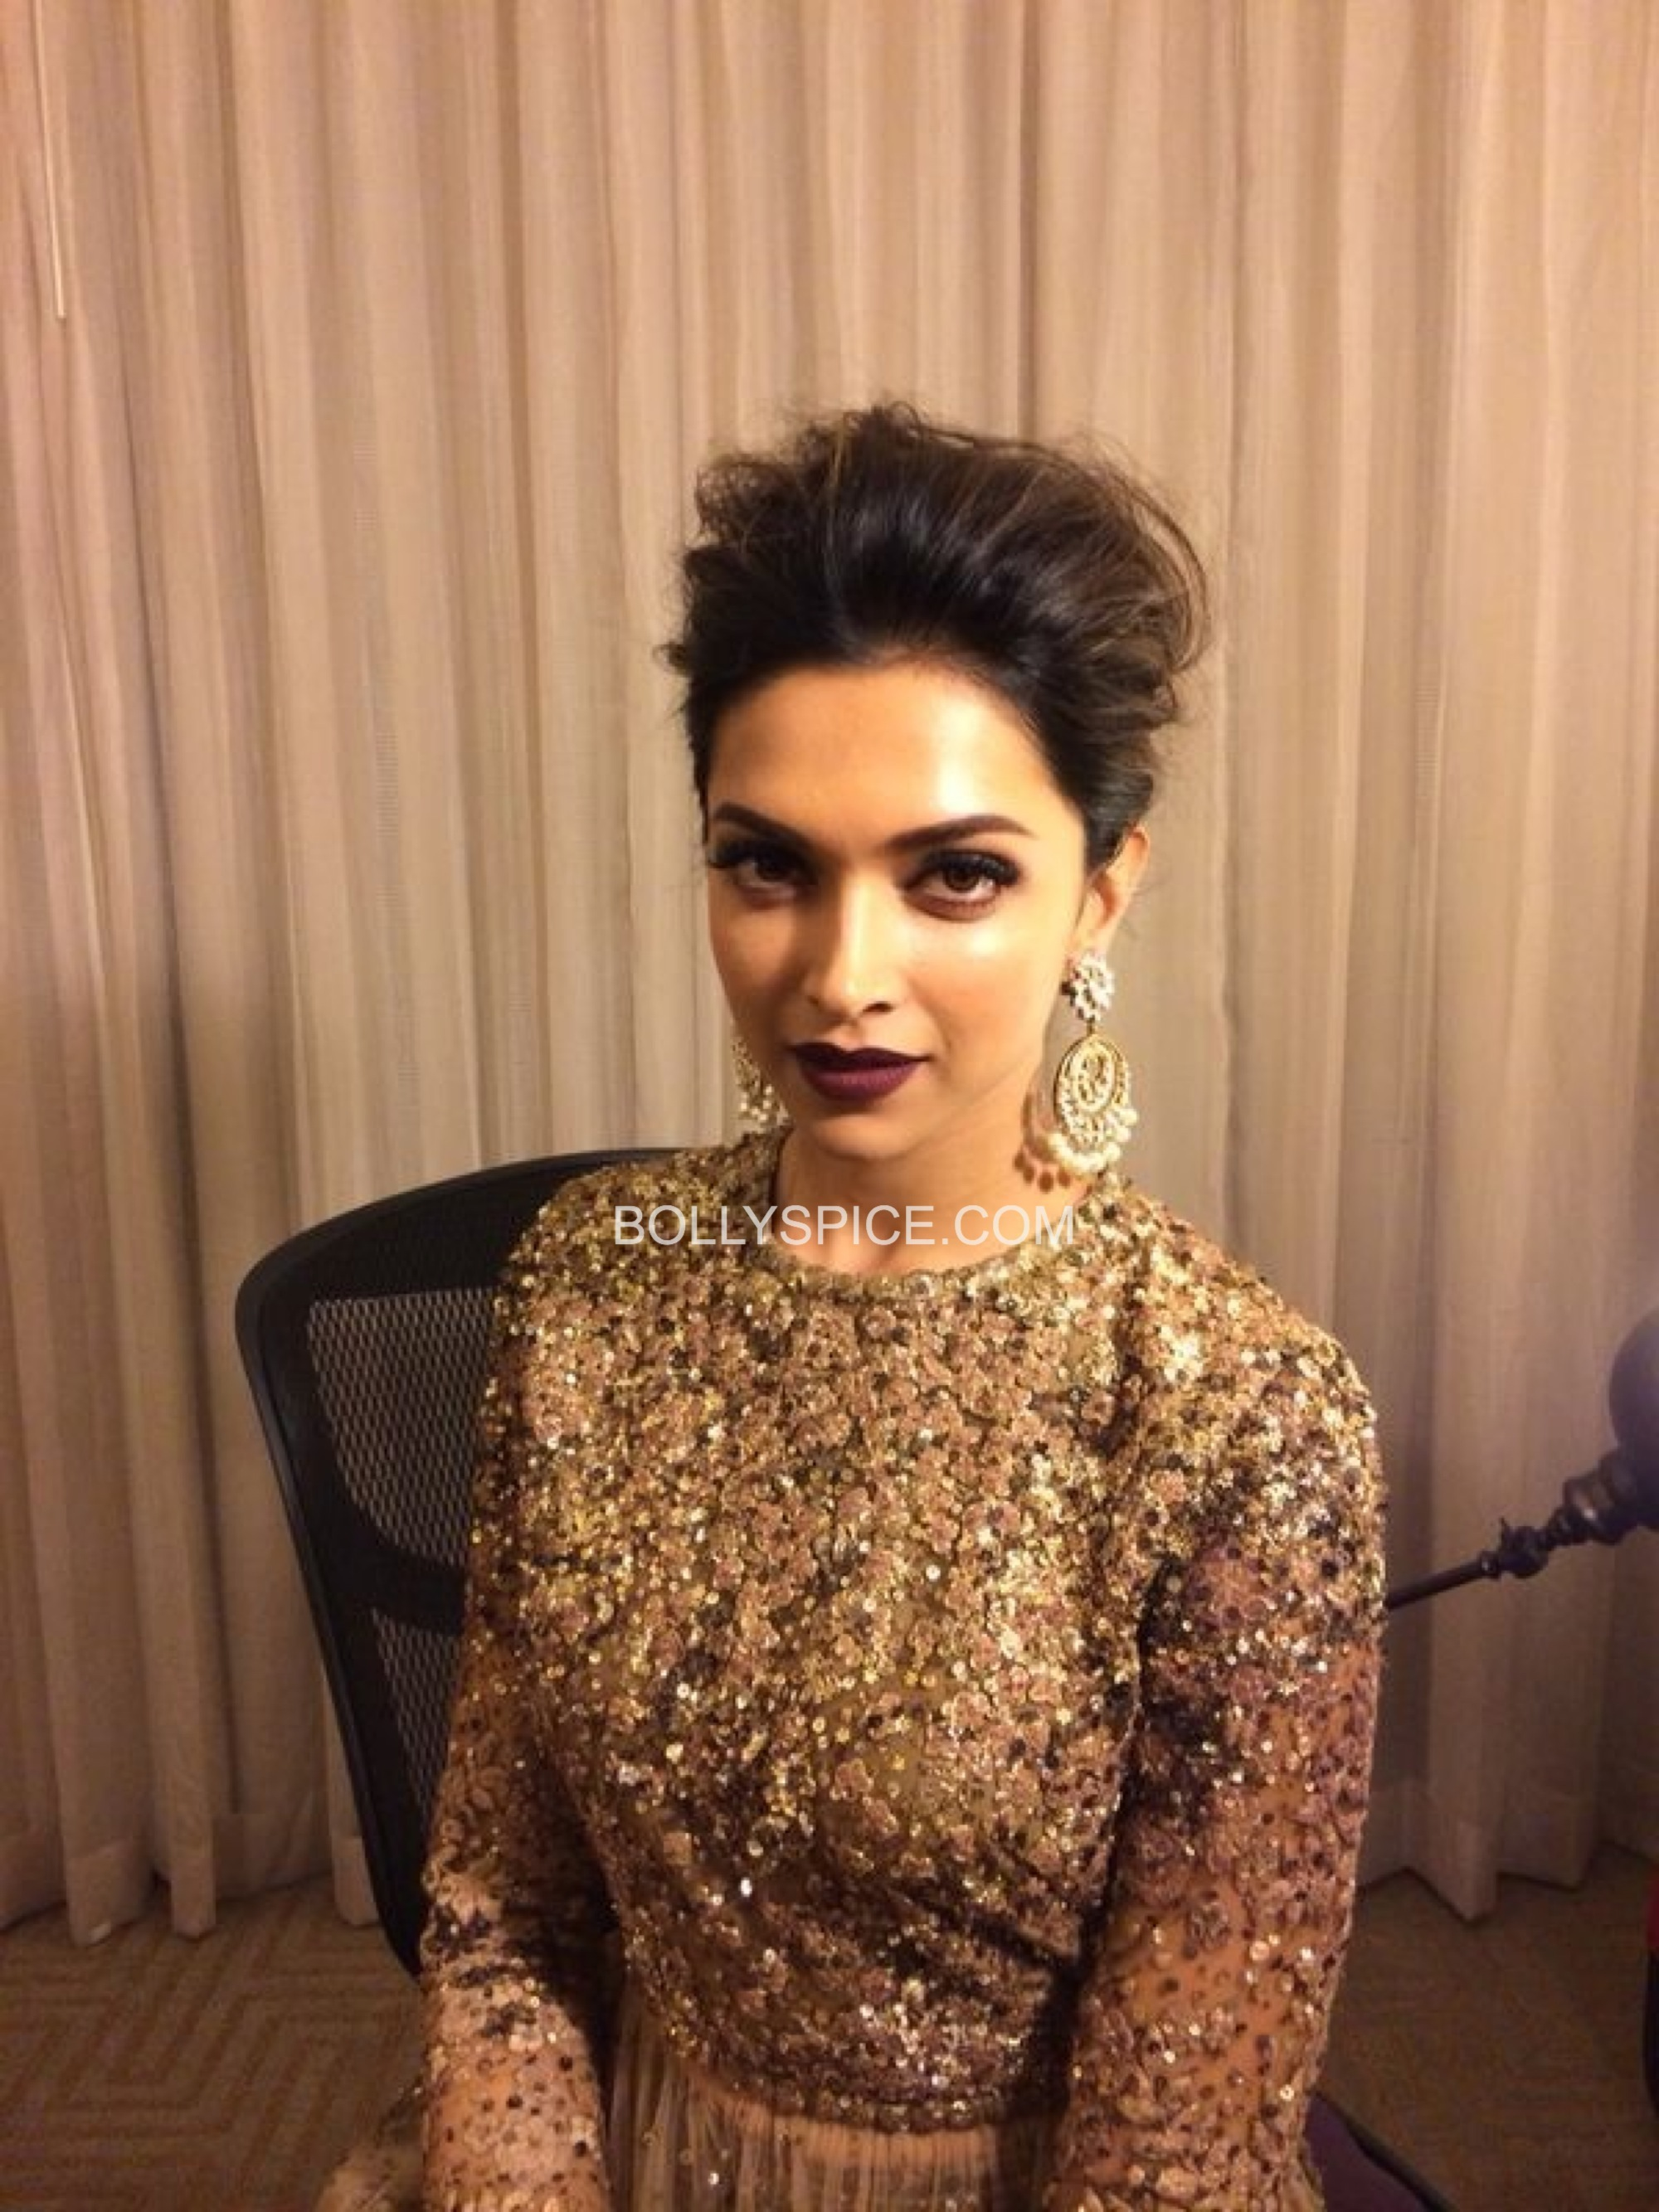 deepikaatiifaexclusive31 Exclusive IIFA Behind the Scenes Pictures of Deepika Padukones Hair and Makeup by Daniel Bauer